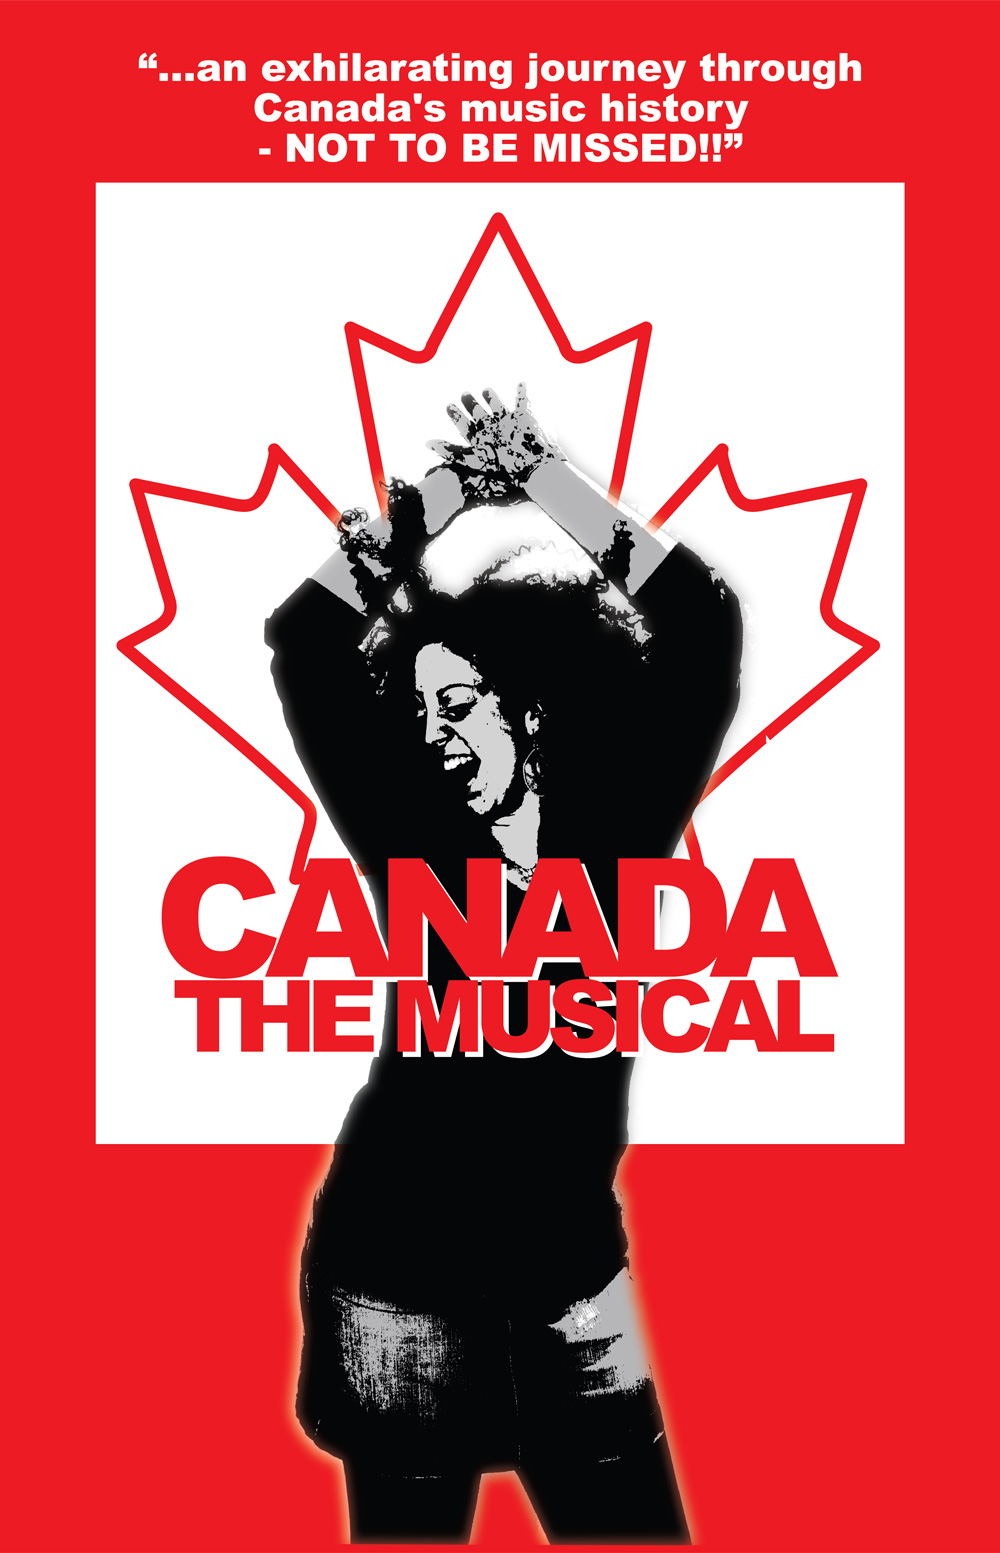 canada-the-musical-normal.jpg